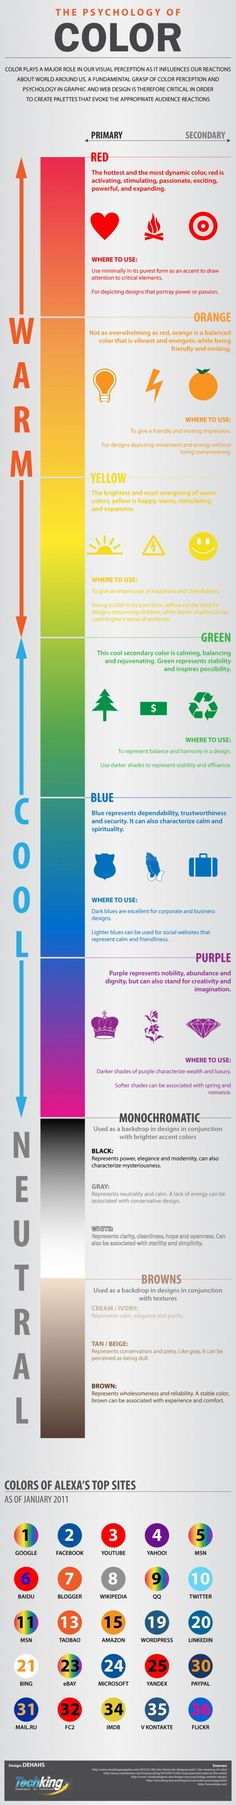 Great infographic on color. Perfect if you are working on your landing pages this weekend.